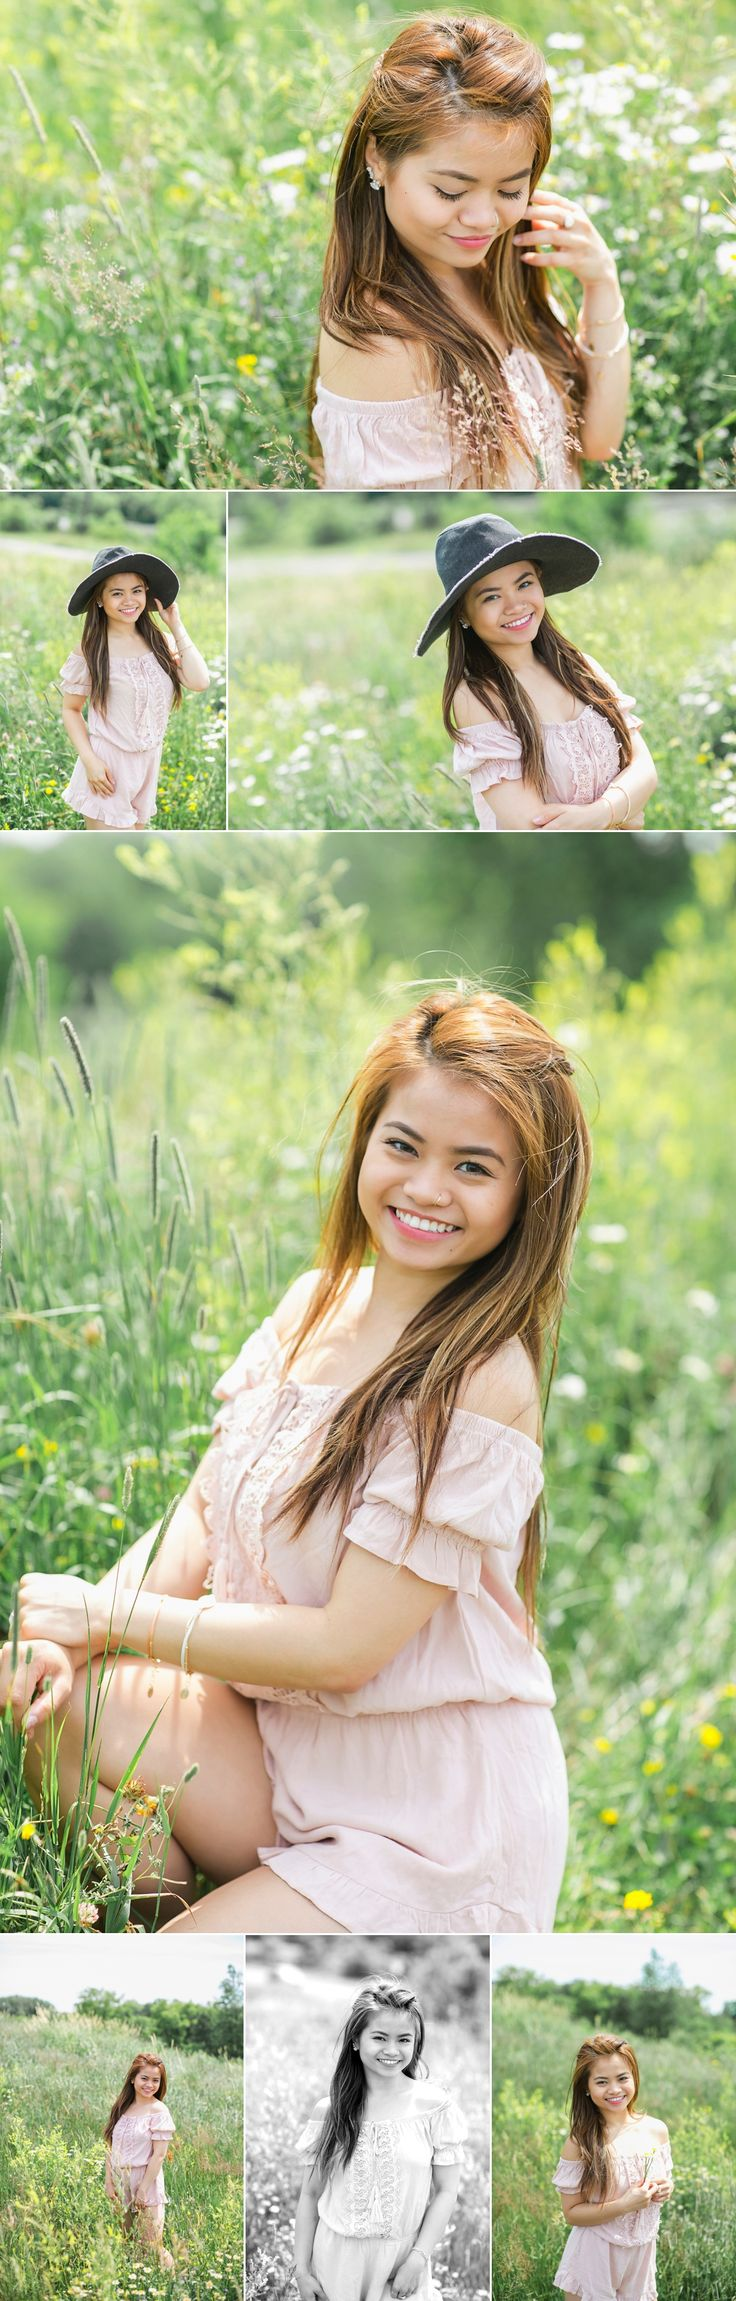 Thanh | Burnsville High School Senior Pictures » Twin Cities Senior Portraits | Photography By Nealy